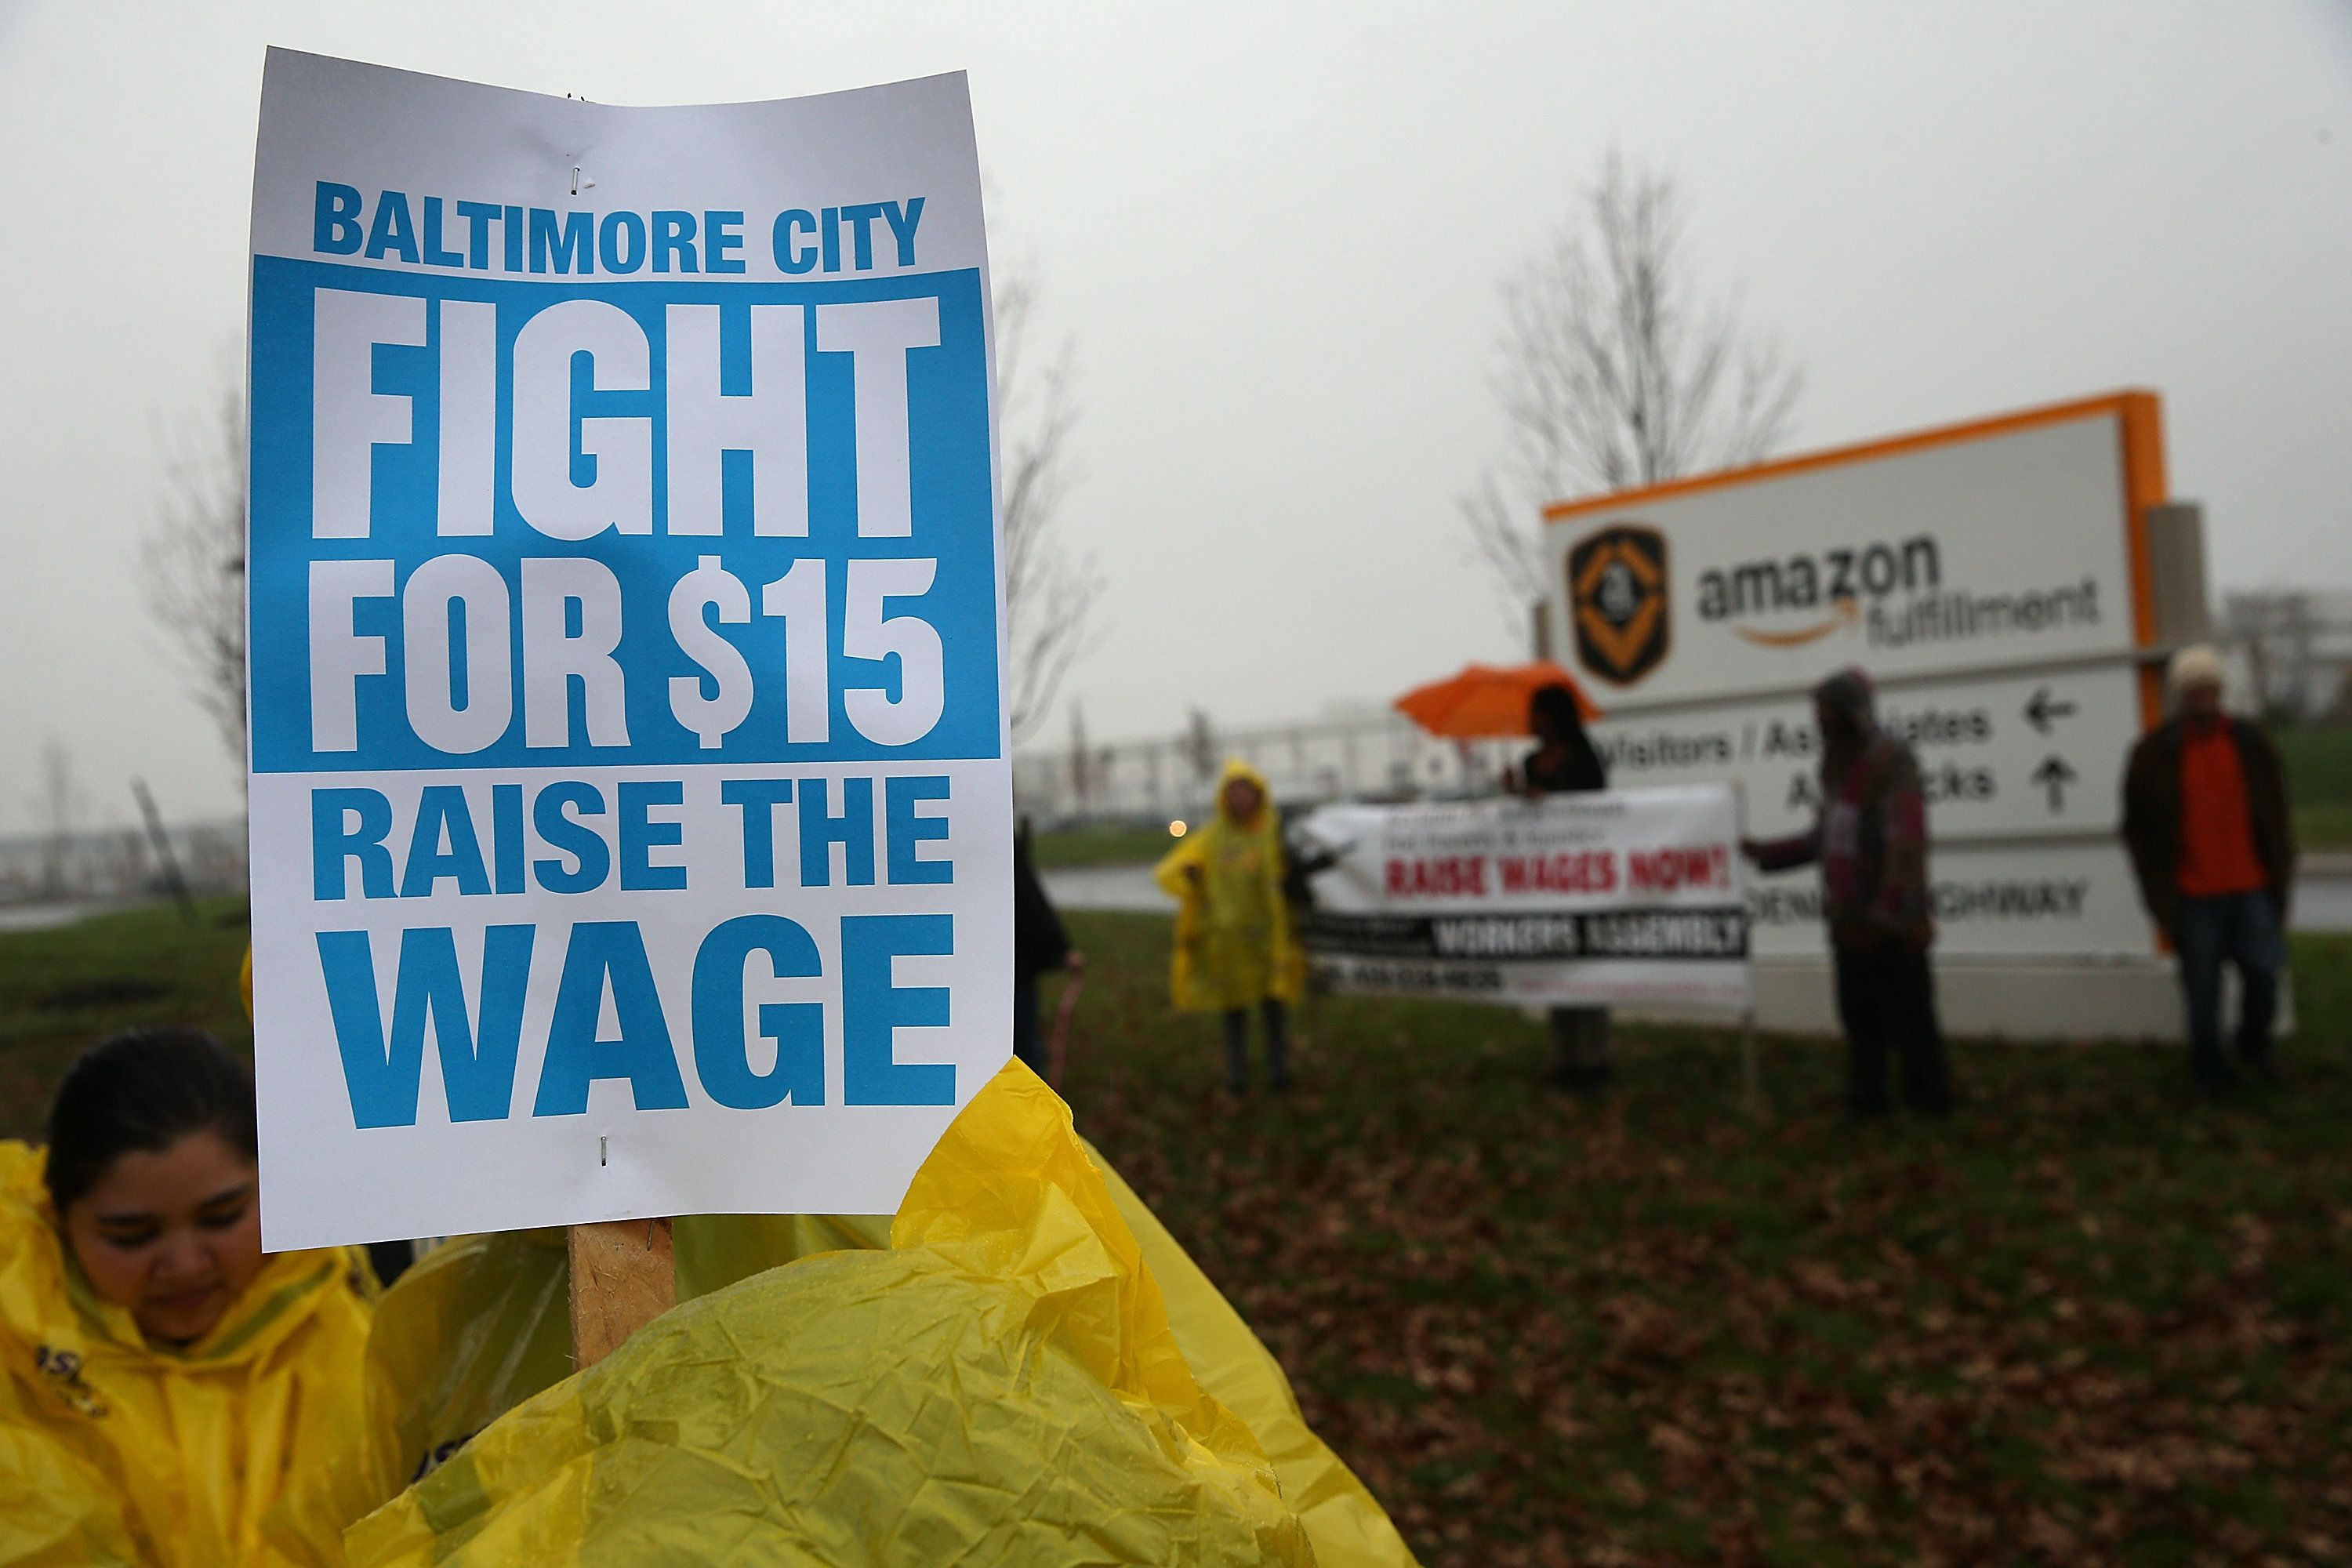 BALTIMORE, MD - NOVEMBER 10:  Protesters rally at a 'Fight for $15 Day of Action' protest outside of an Amazon fulfillment center on November 10, 2015 in Baltimore, Maryland. Local unions assert that 'most of the jobs are temporary, offering no benefits or guarantee of full time employment.'  (Photo by Win McNamee/Getty Images)